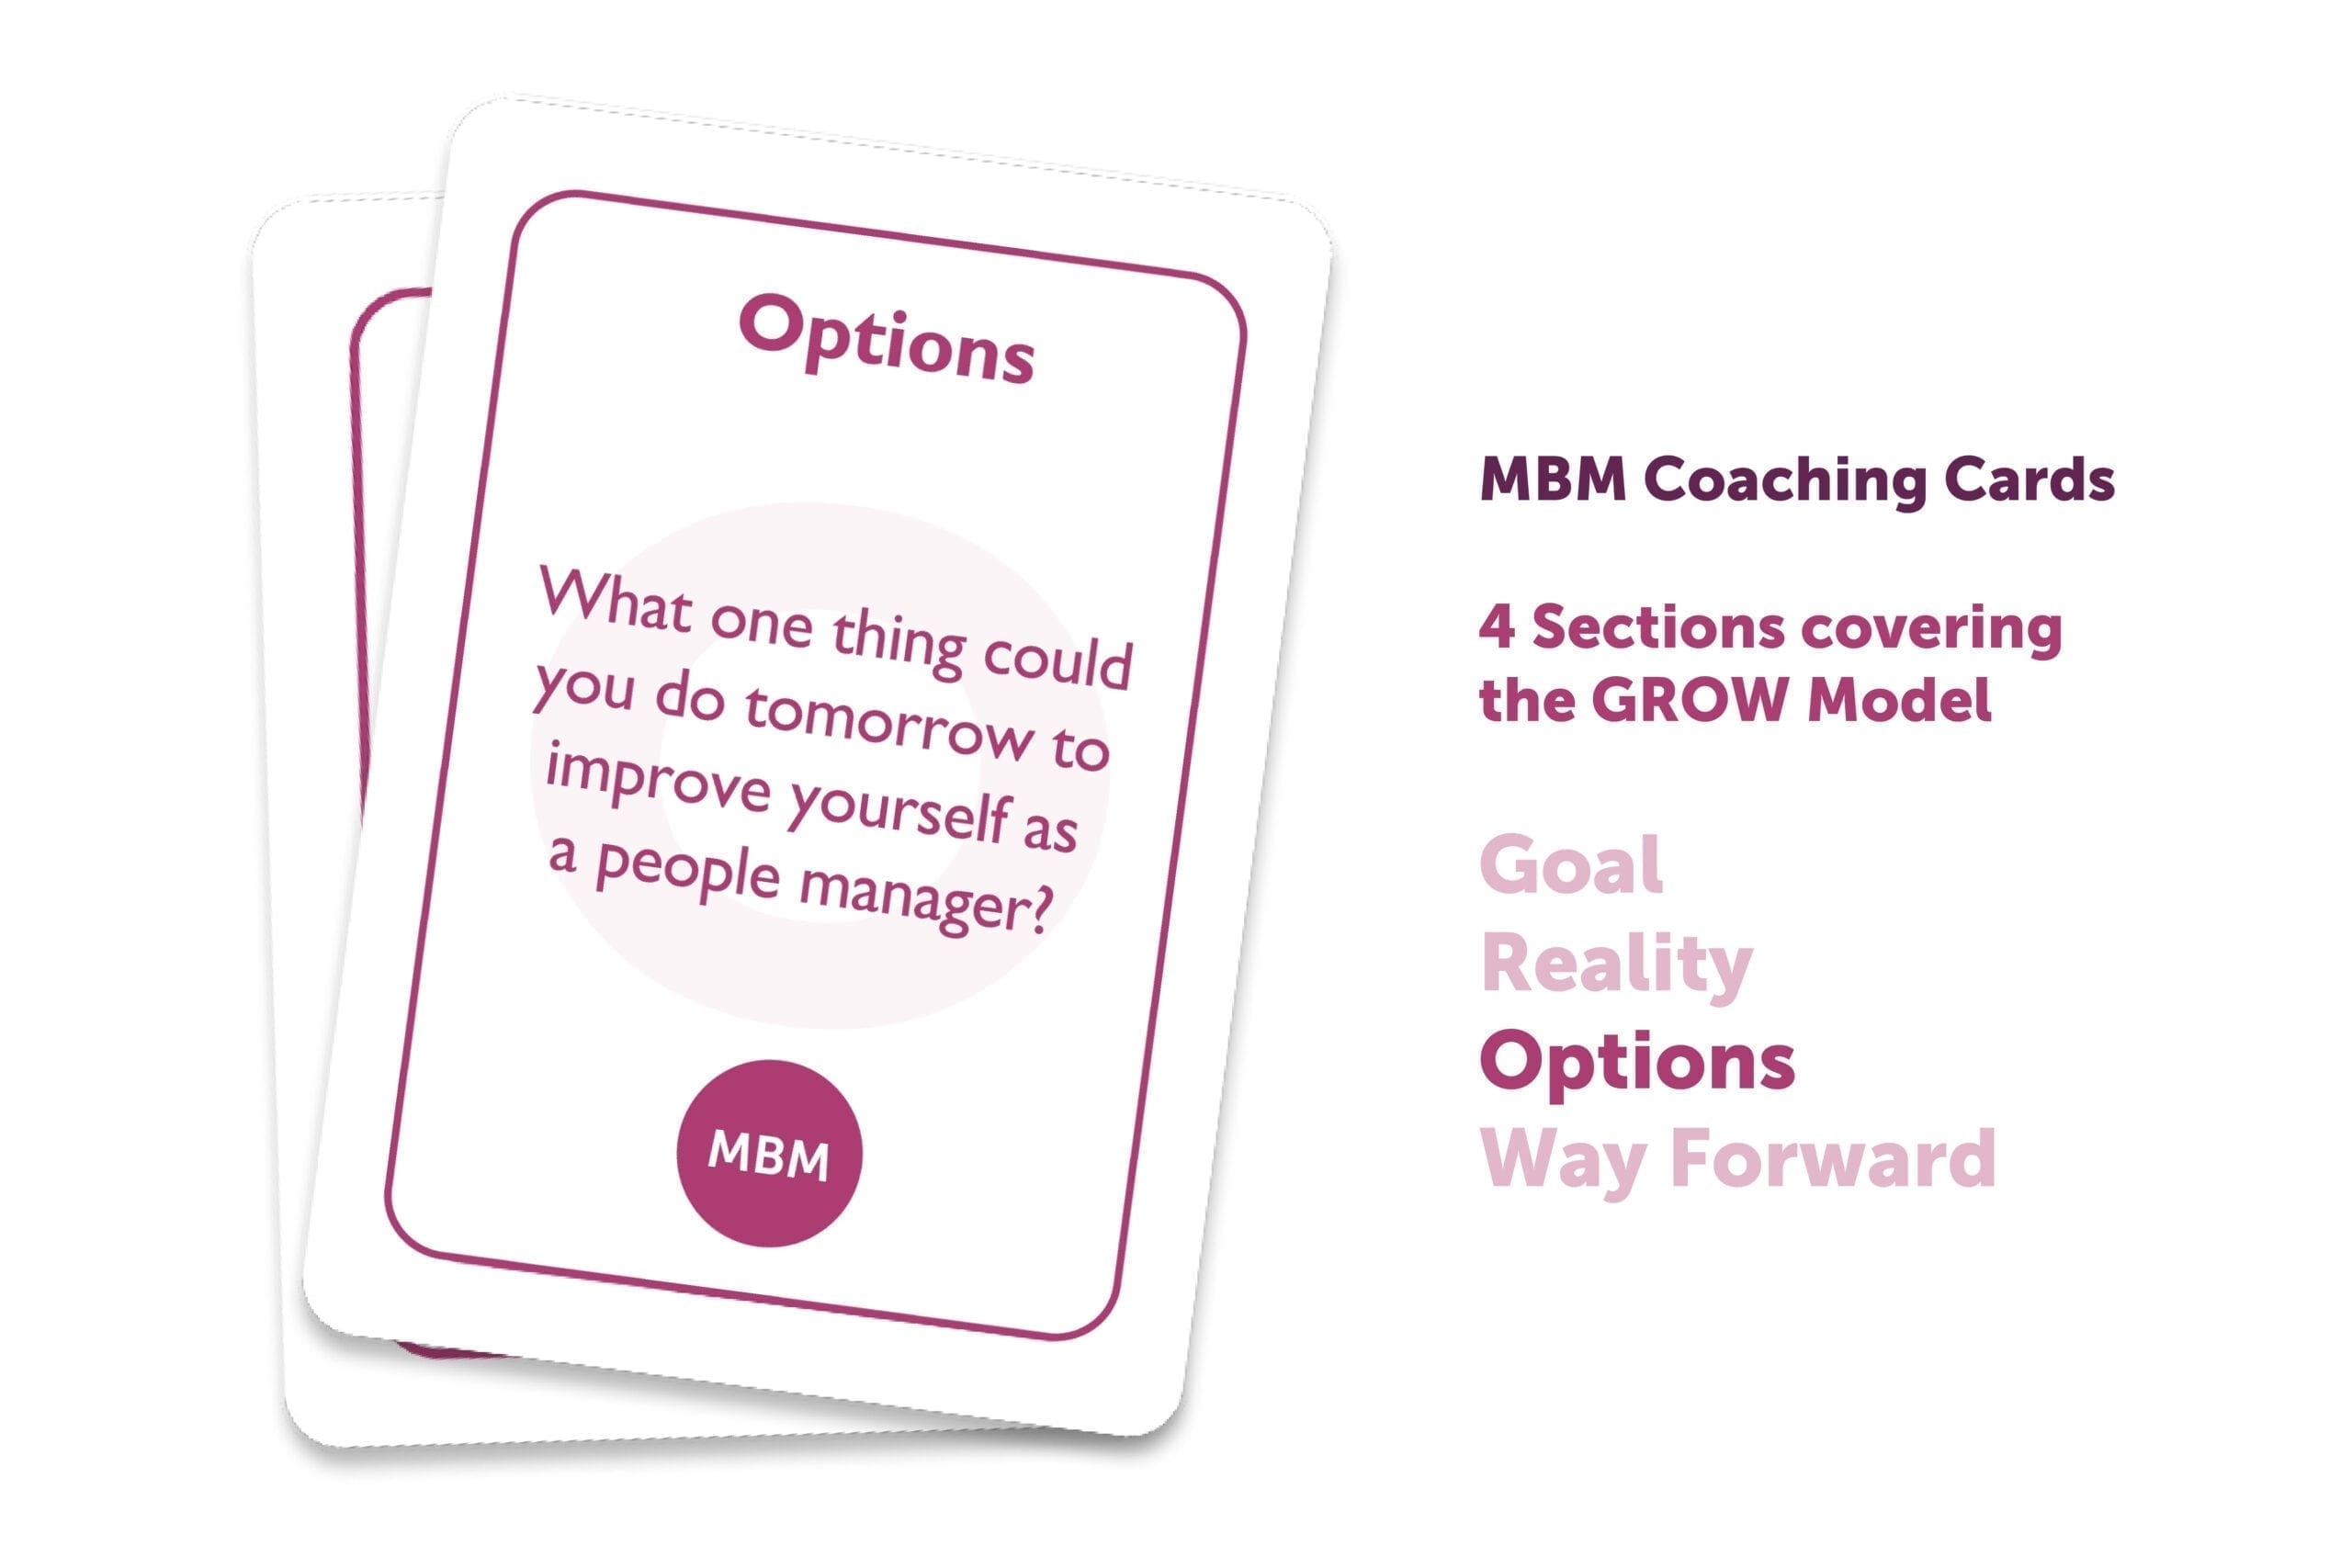 2 GROW coaching cards one top of each other with Options as the title